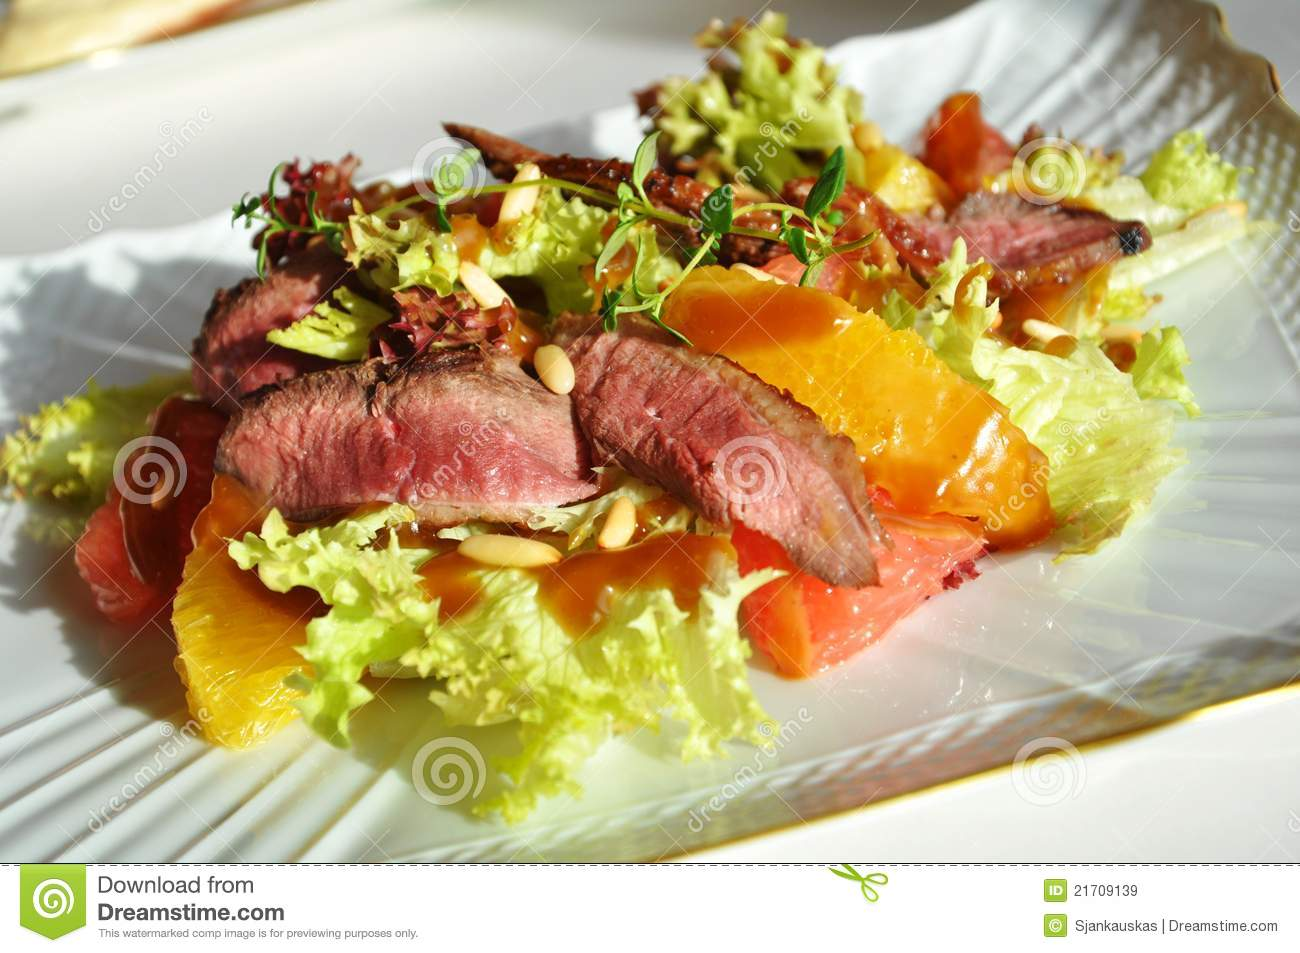 Fresh salad with duck breast